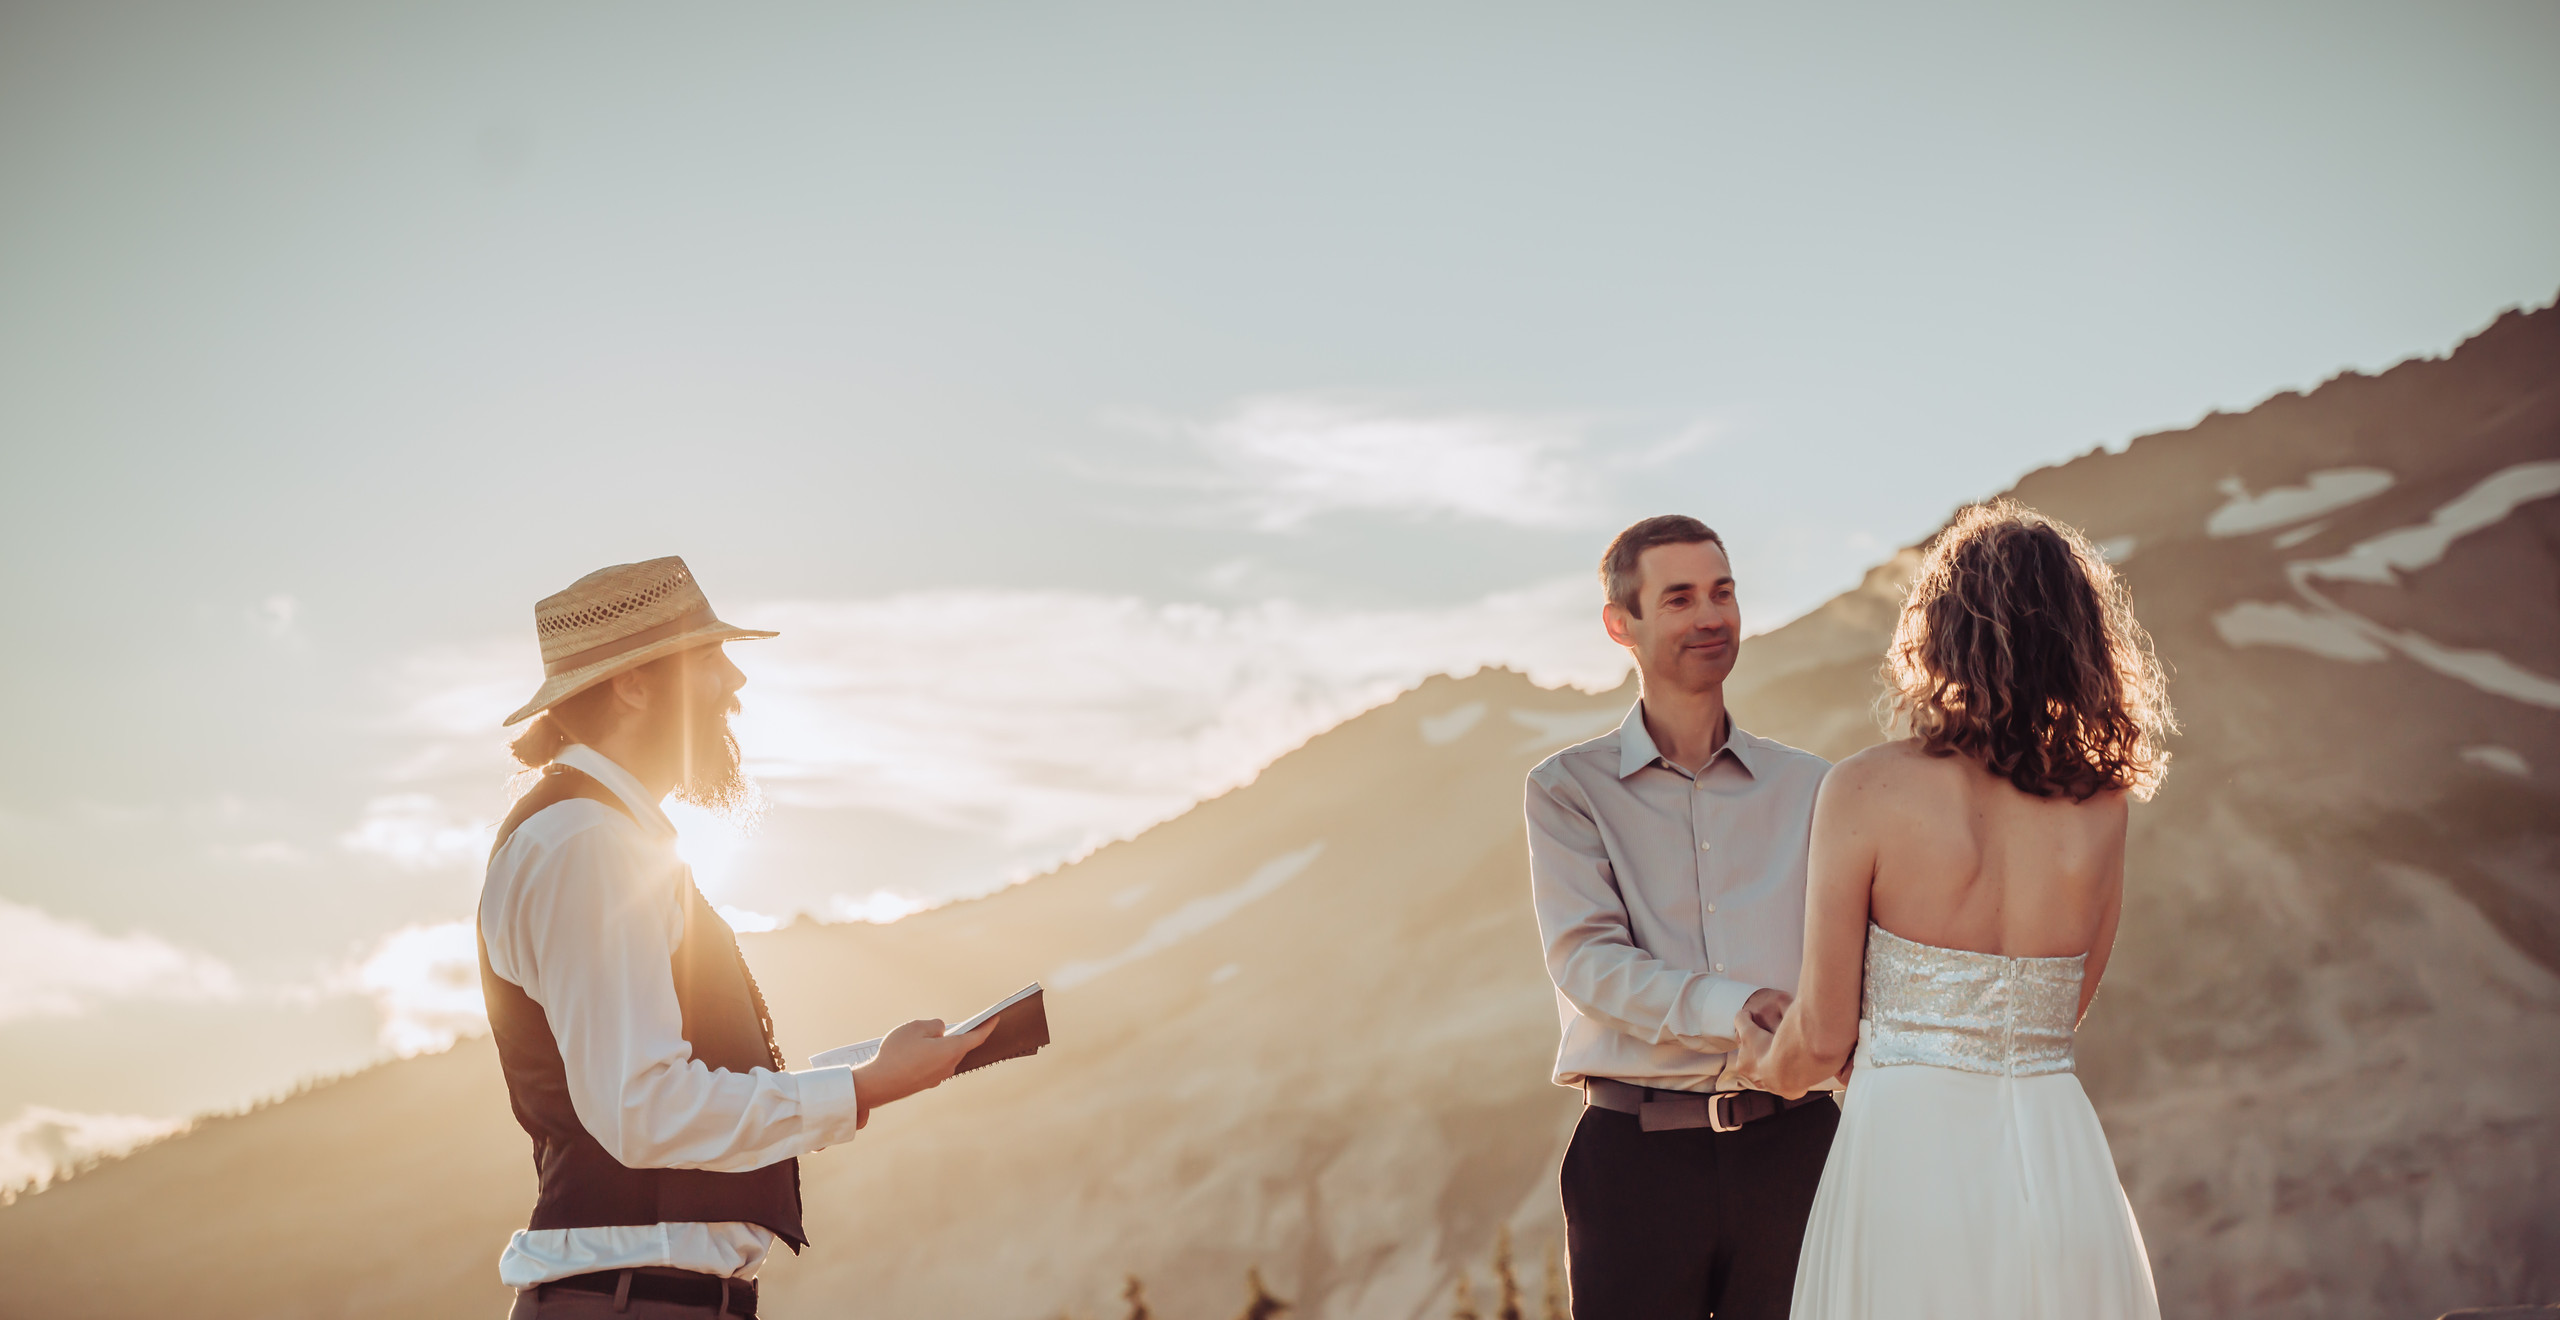 Officiant doing the vow ceremony in front of the bride and groom with Mt. Rainier as the backdrop